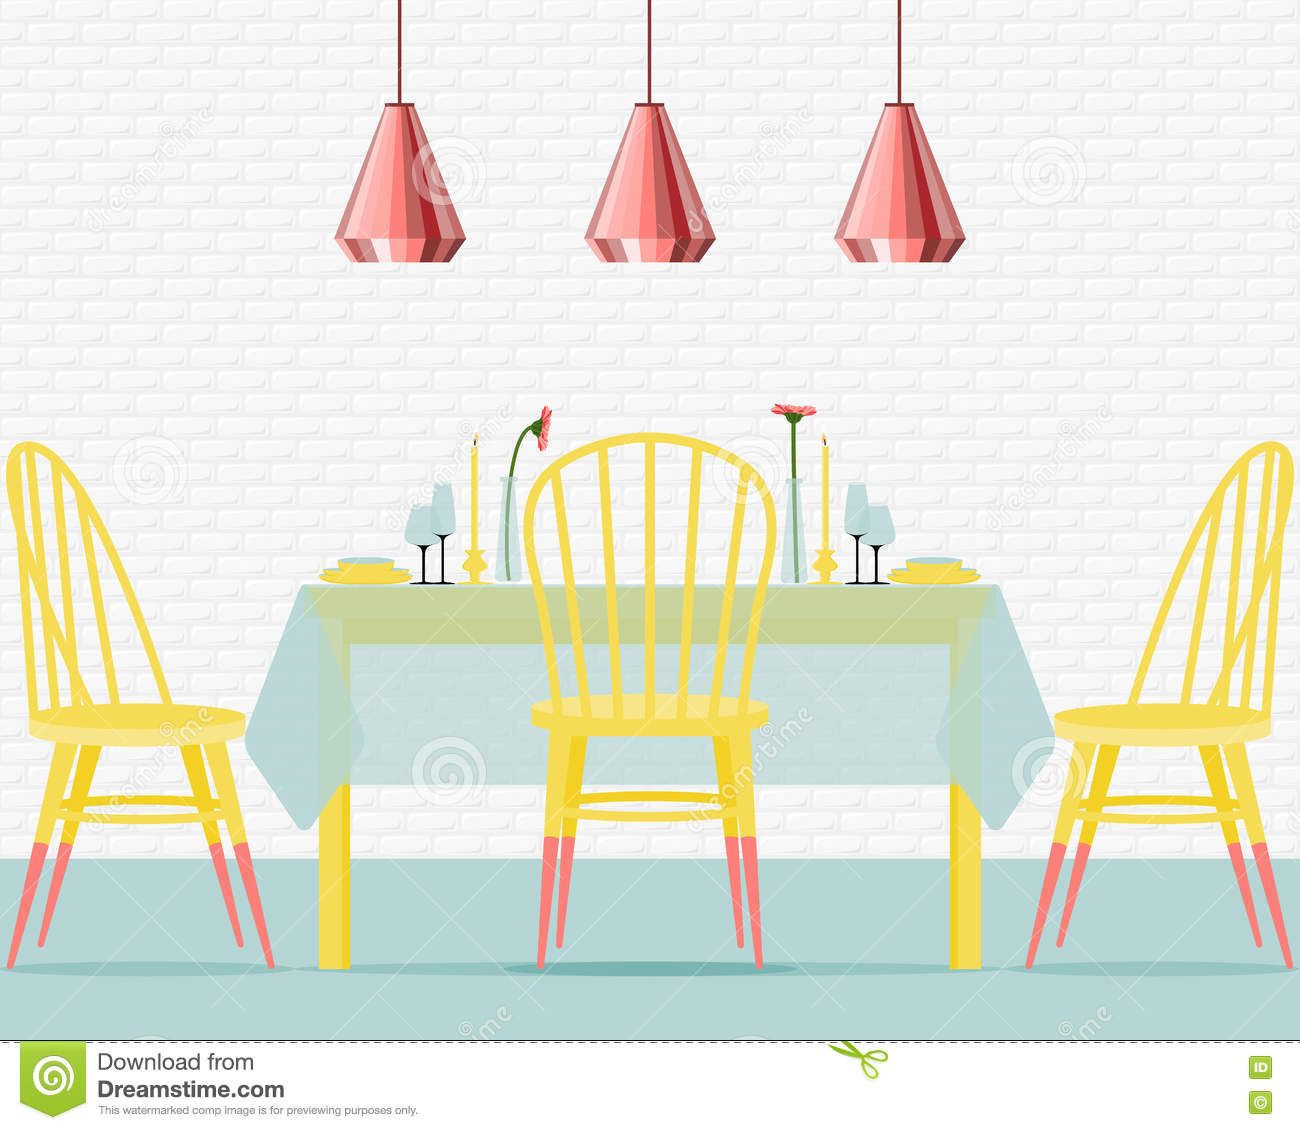 Flat Design Interior Dining Room Vector Illustration Stock: Vector Illustration With Dining Room In Flat Style. Stock